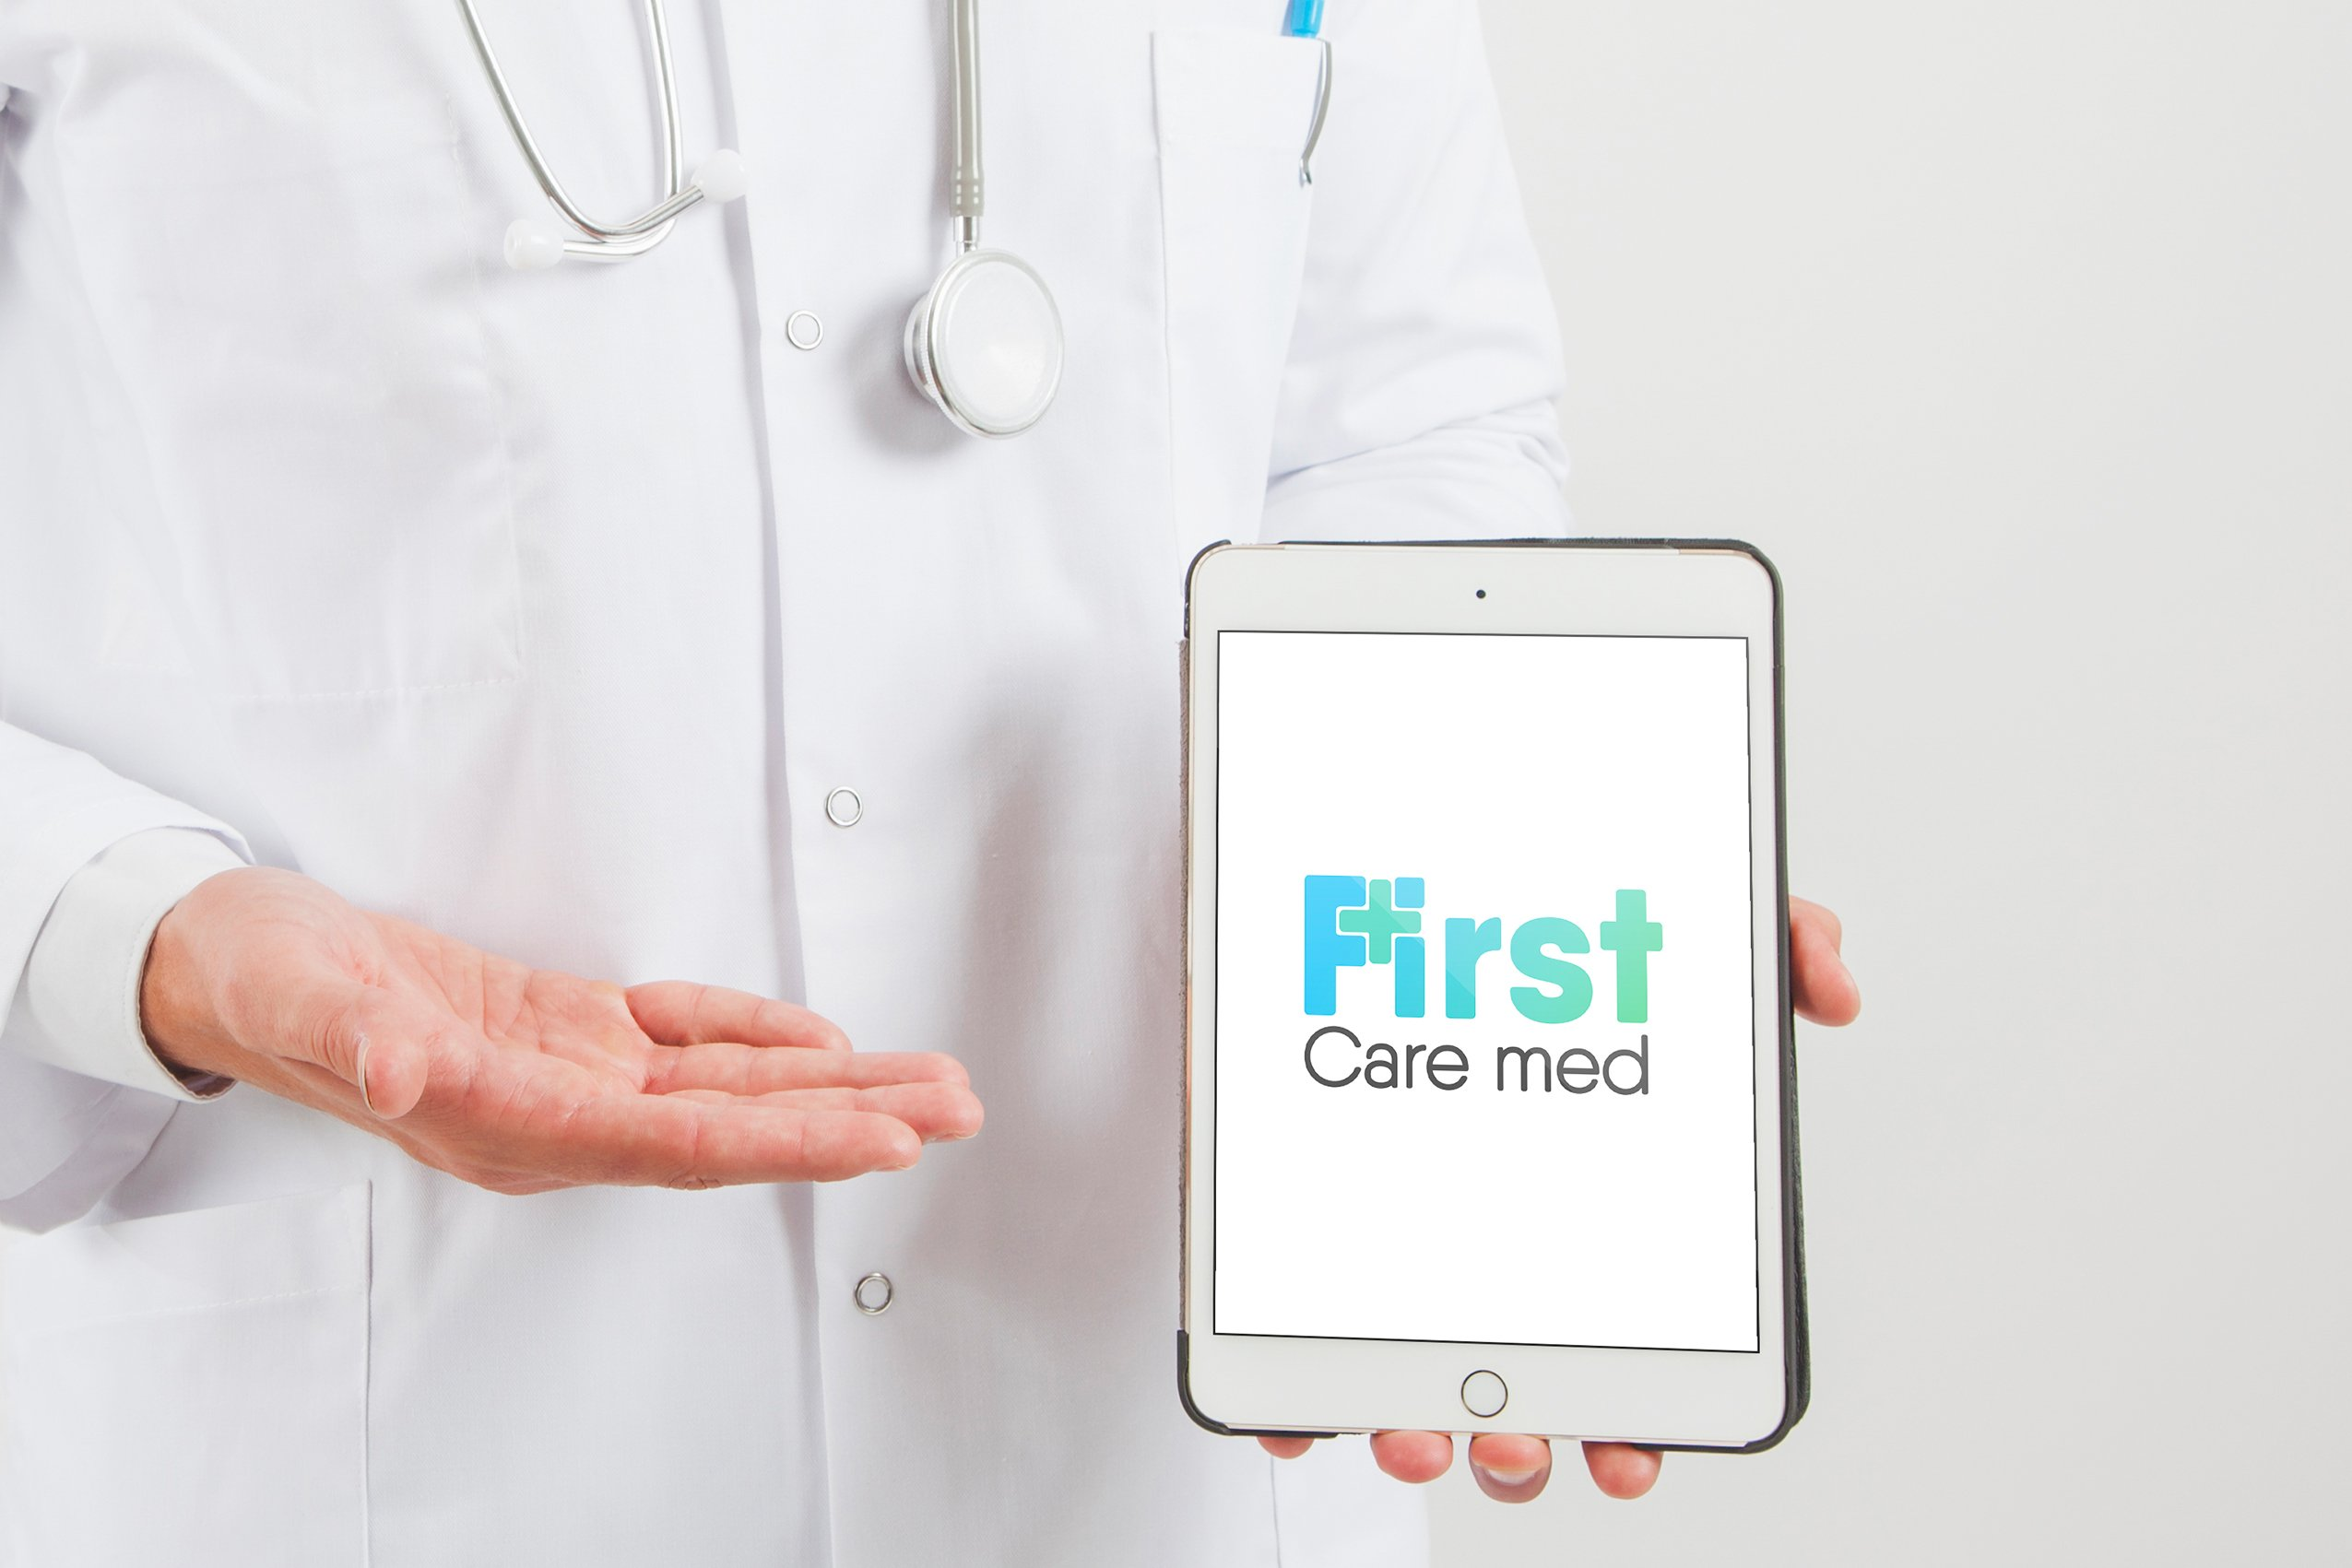 first care -900 x600 -3